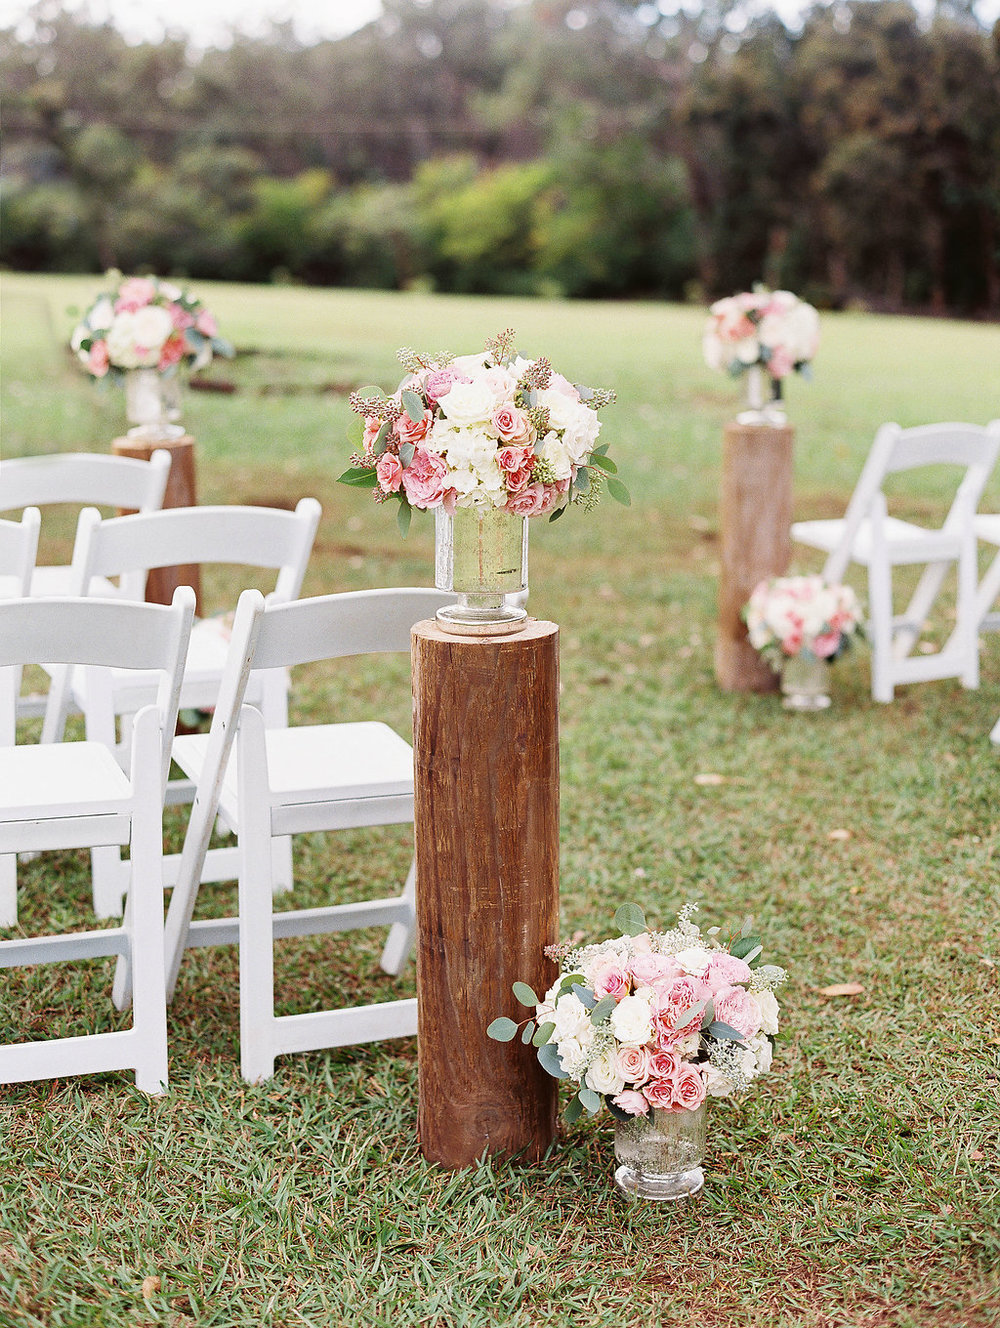 Peach Rustic Ceremony by Passion Roots | Ashley Goodwin Photography